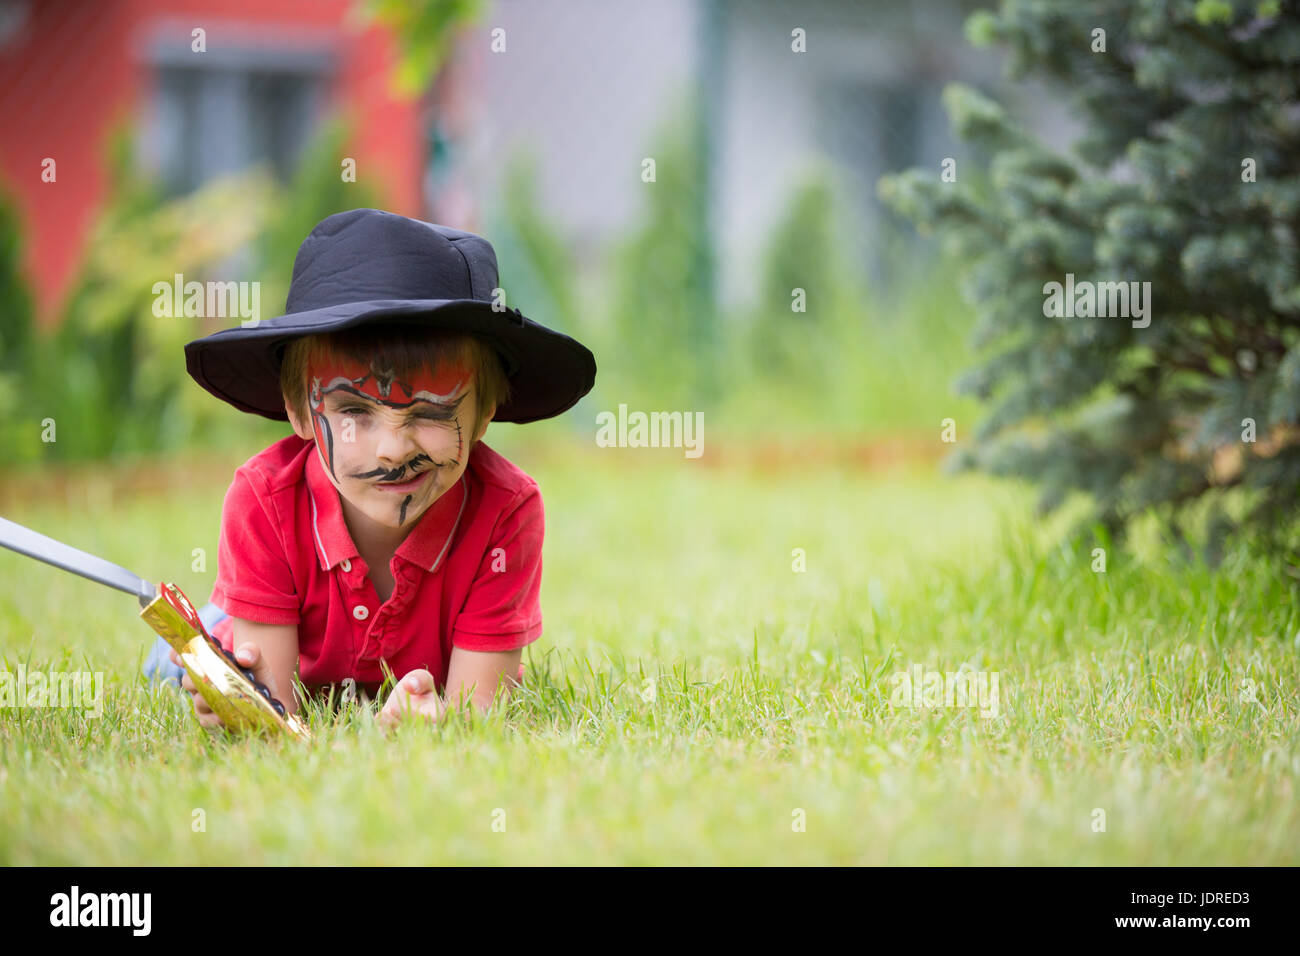 Cute school boy, playing games, painted as pirate, holding sword, play in garden, outdoor summertime Stock Photo